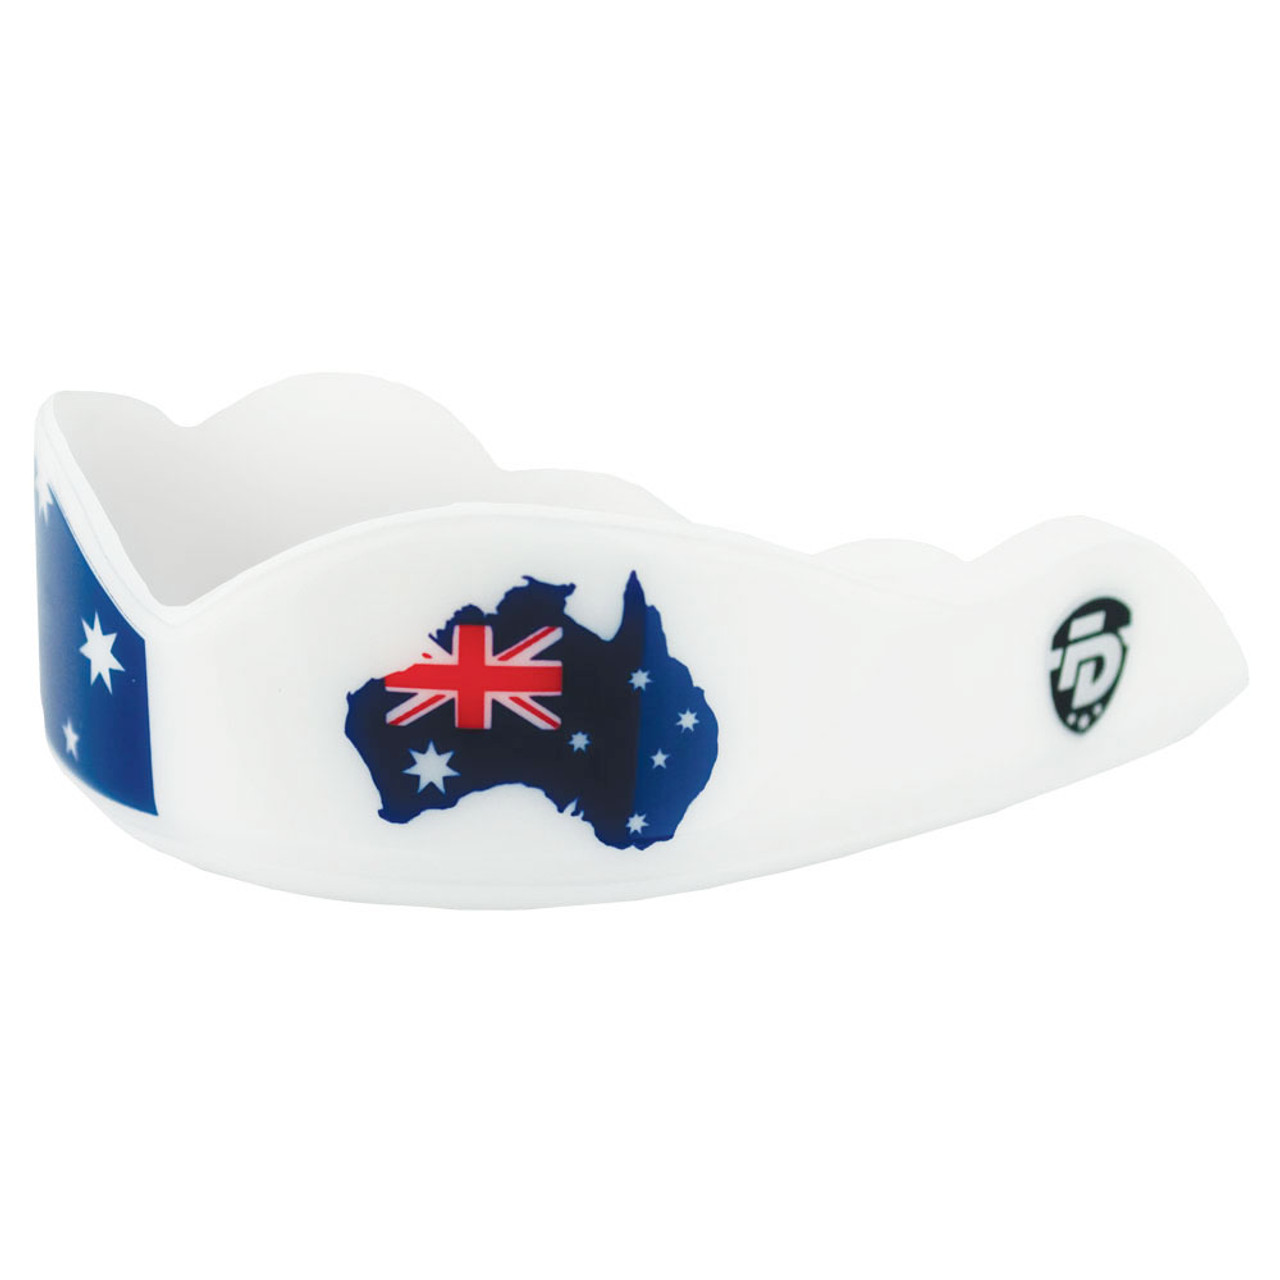 Fightdentist Boil & Bite Mouth Guard - Down Under